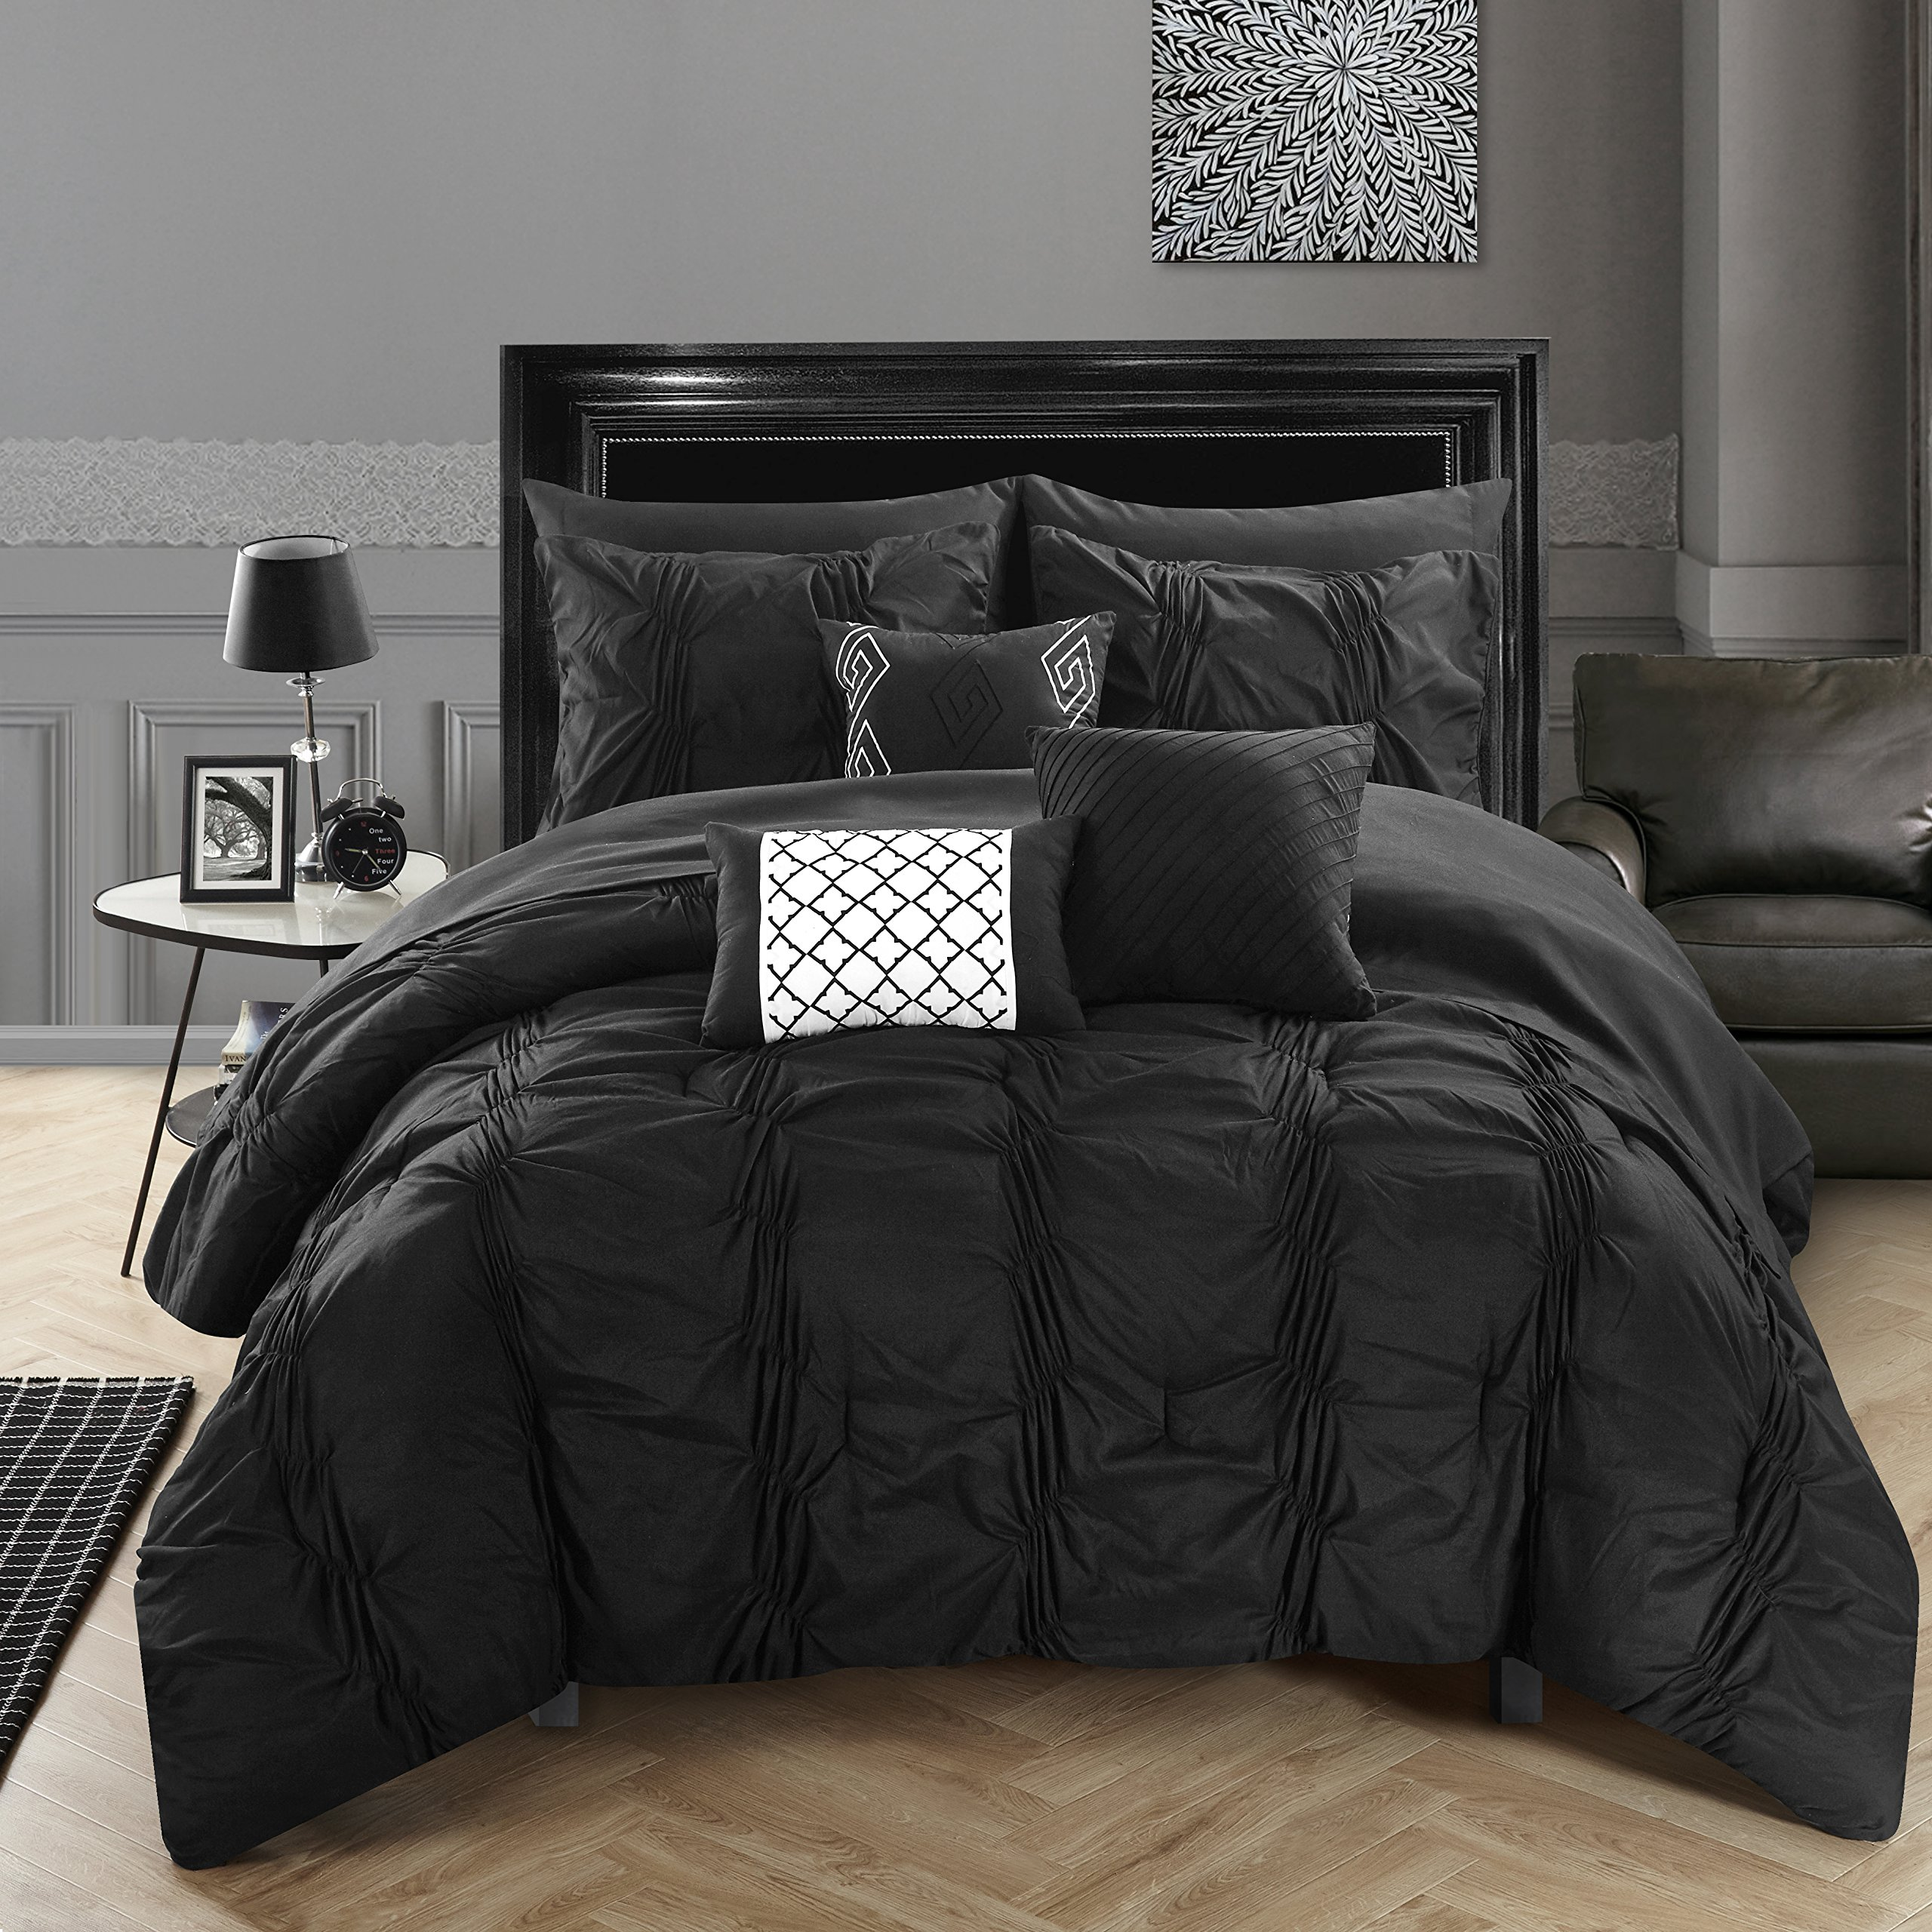 Chic Home 10 Piece Tori Pinch Pleated, Ruffled And Pleated Complete Bed In A Bag Comforter Set Sheets Set And Deocrative Pillows Included, King, Black